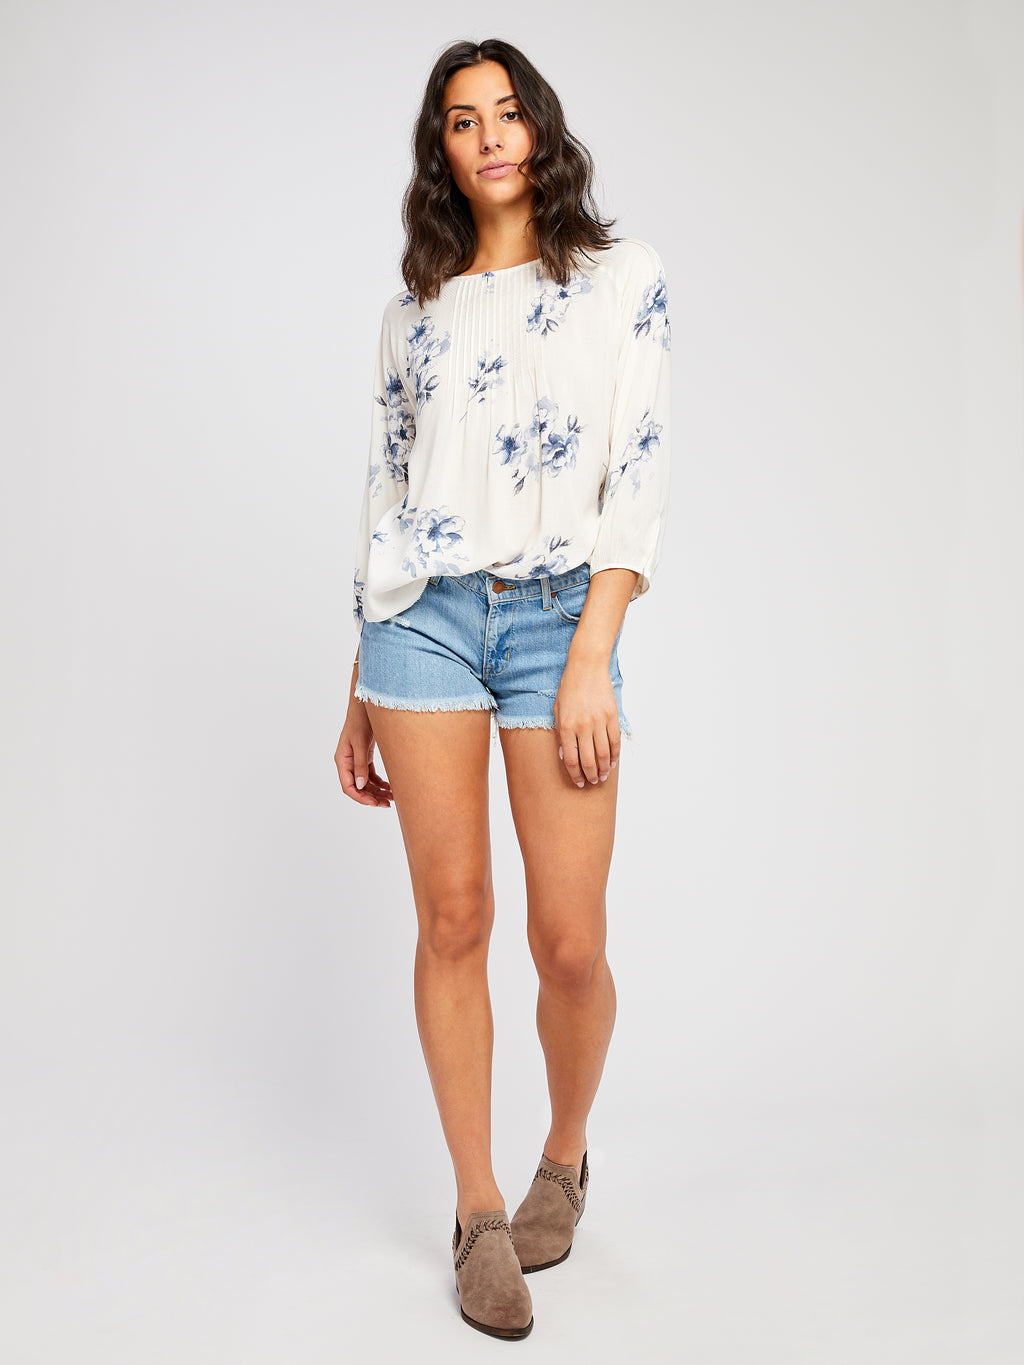 Bailey Long Sleeve Top